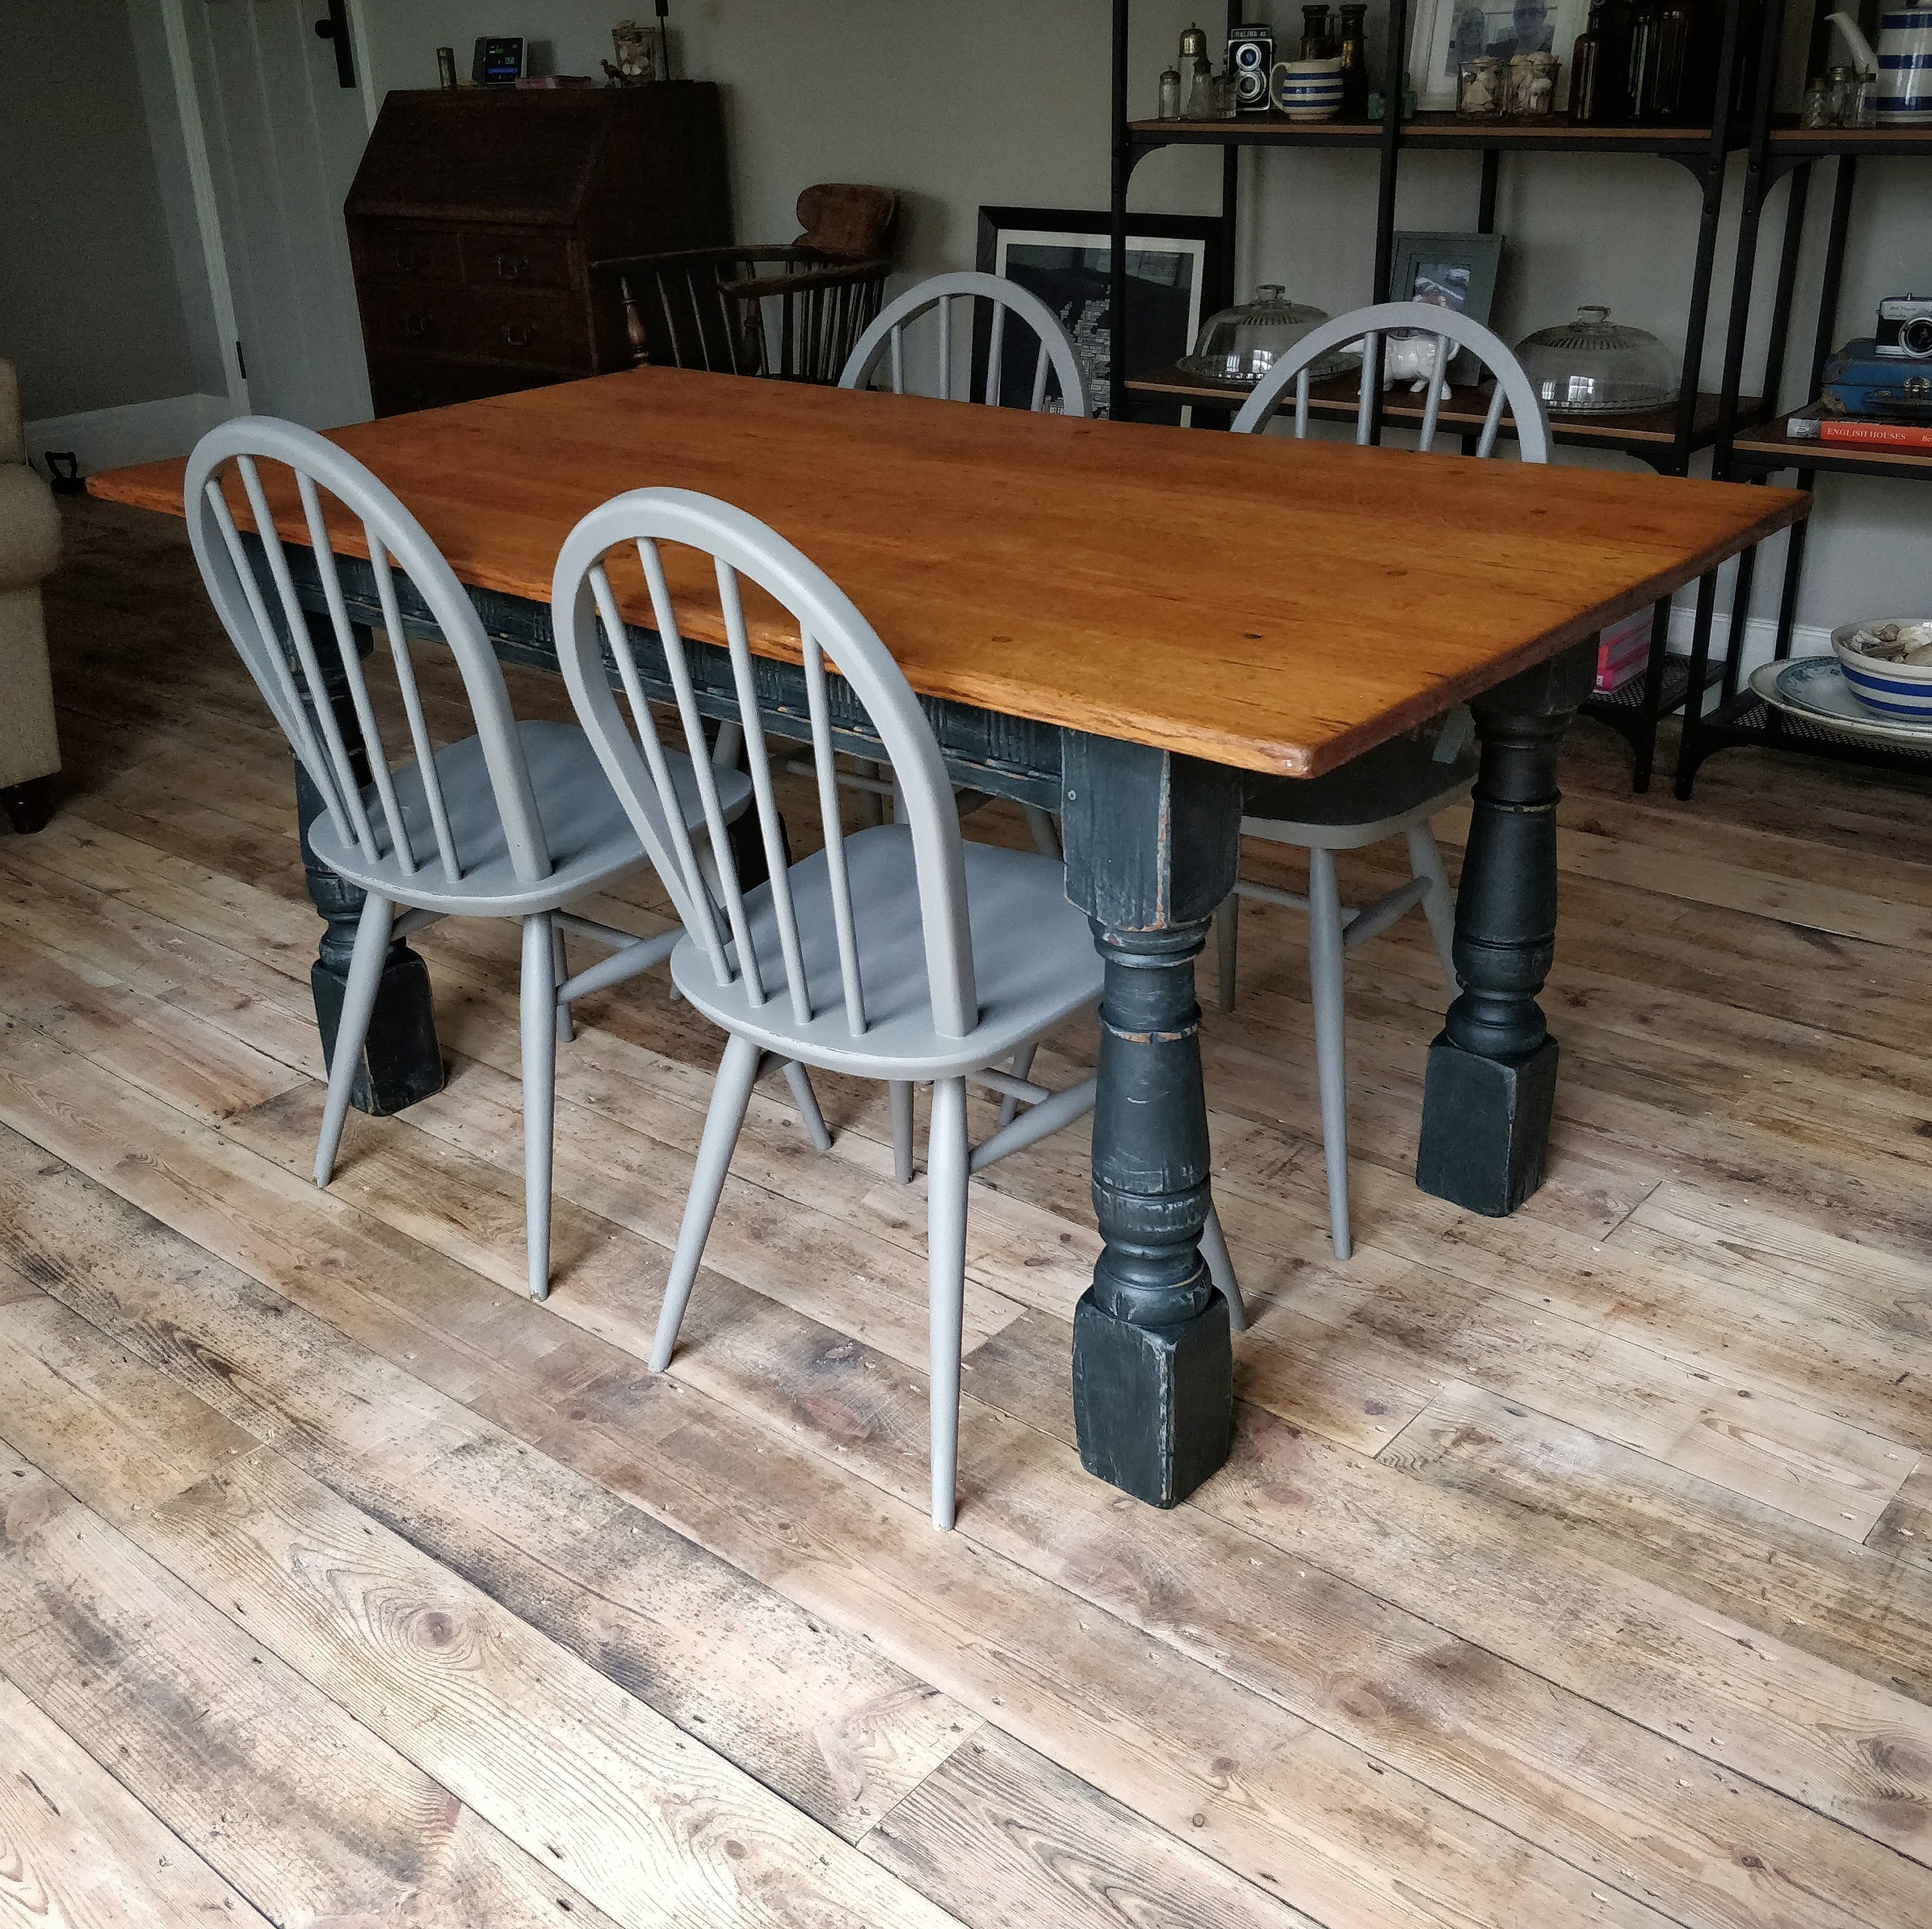 Beautifully Rustic Solid Oak Dining Table And 4 Ercol Chairs Kitchen Vintage Painted